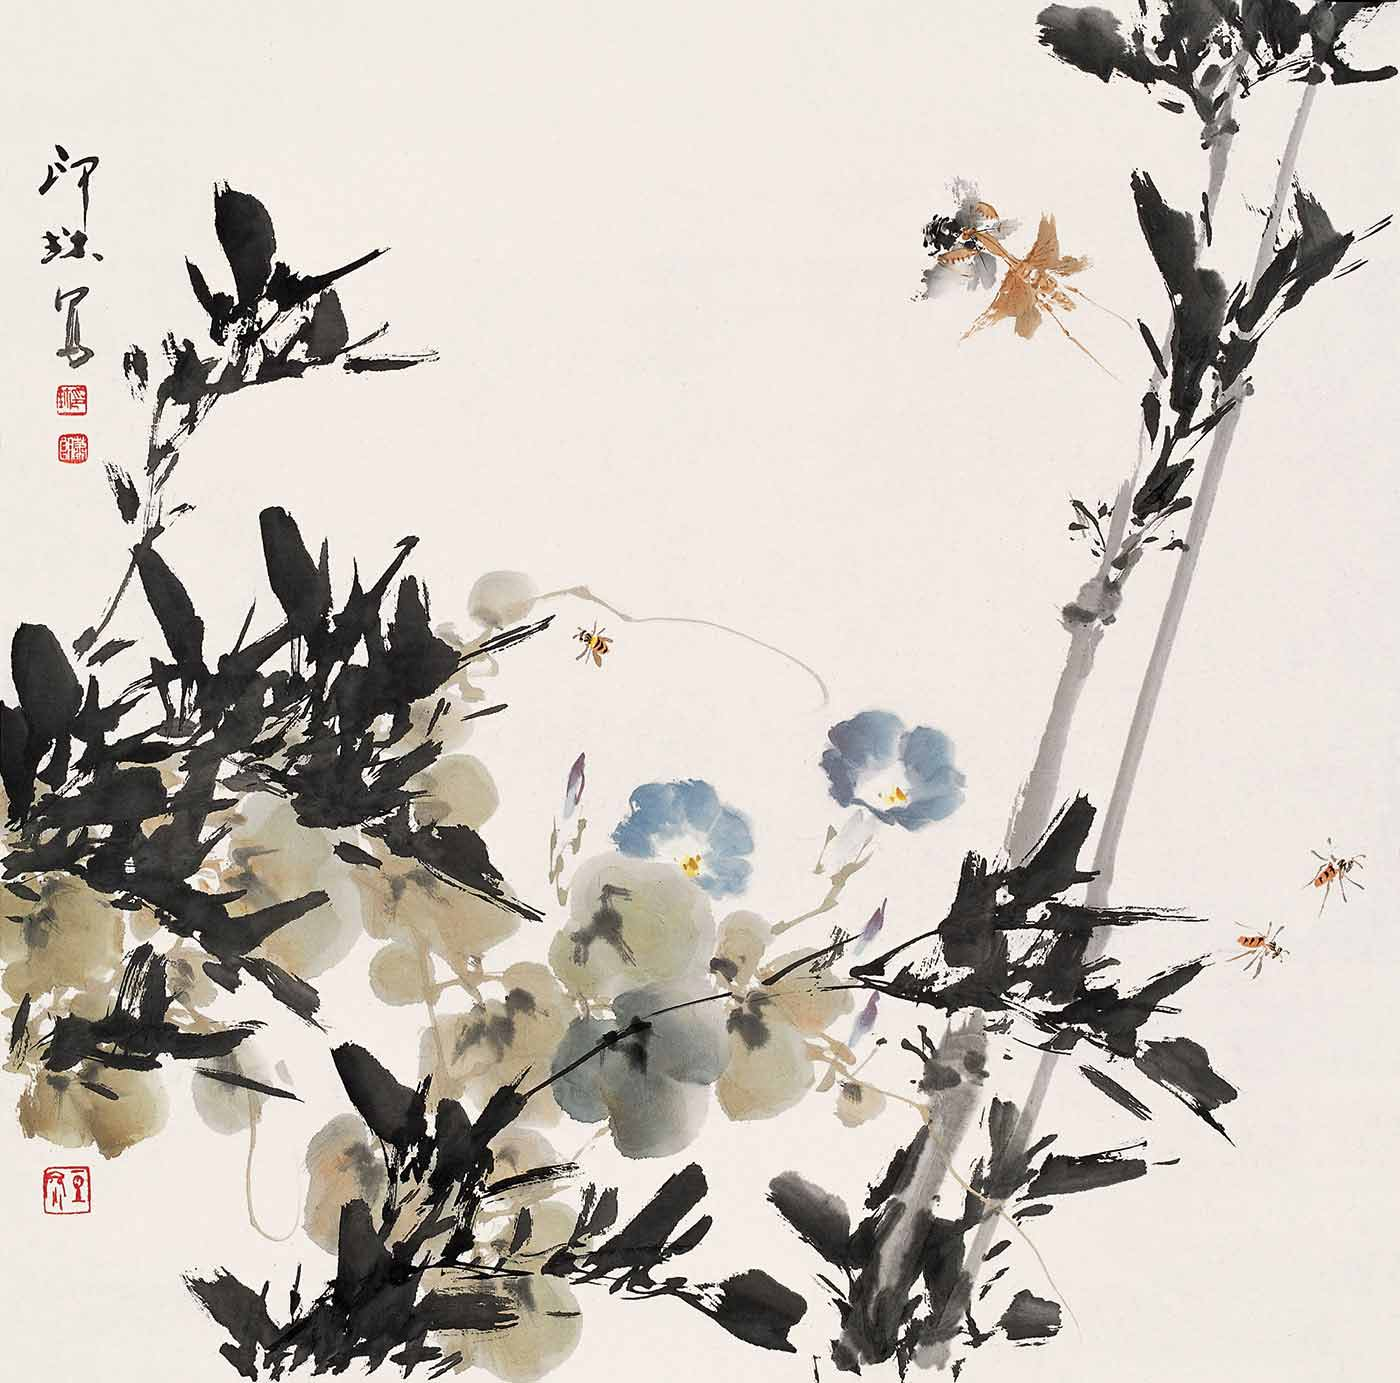 Chinese calligraphic painting in coloured inks showing insects flying among foliage.  - click to view larger image